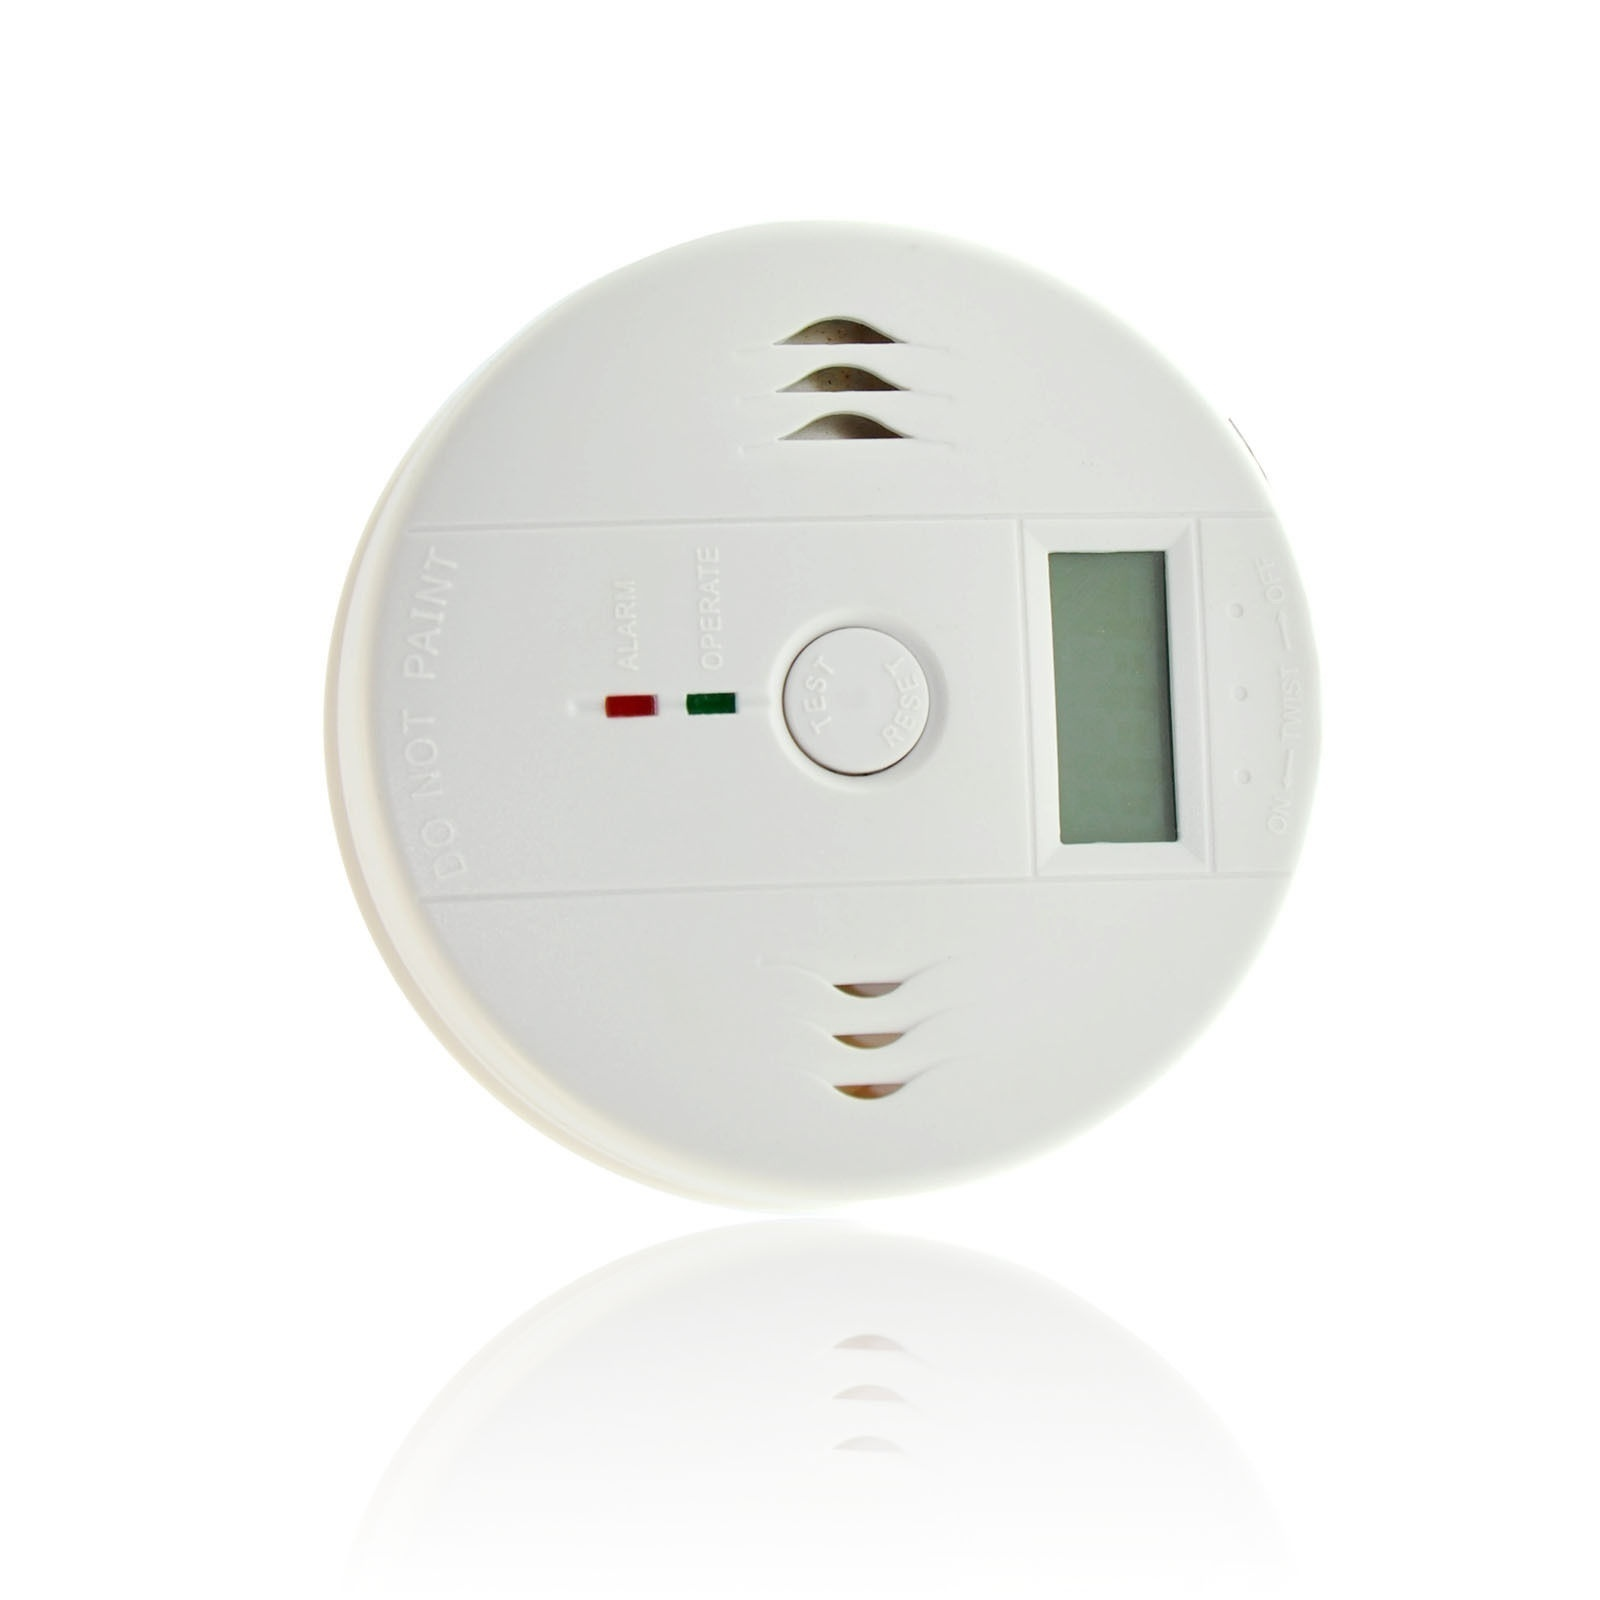 Lcd Co Carbon Monoxide Detector Poisoning Gas Fire Warning Safe Alarm Sensor Gas Analyzers In